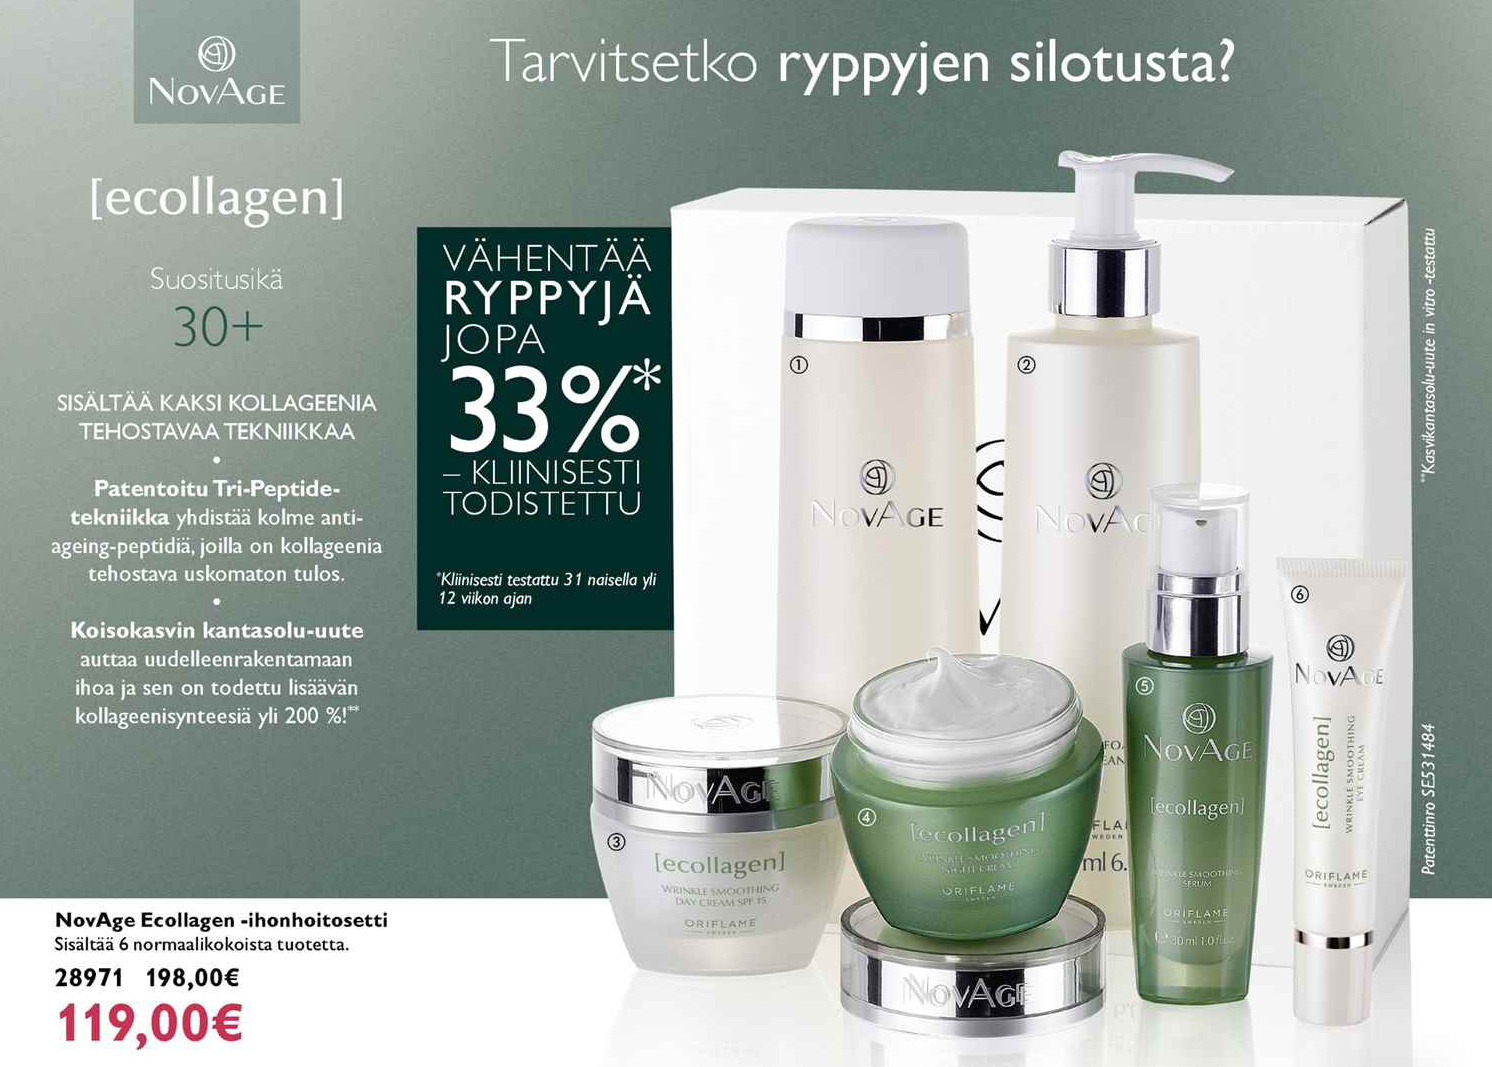 NovAge setti Ecollagen